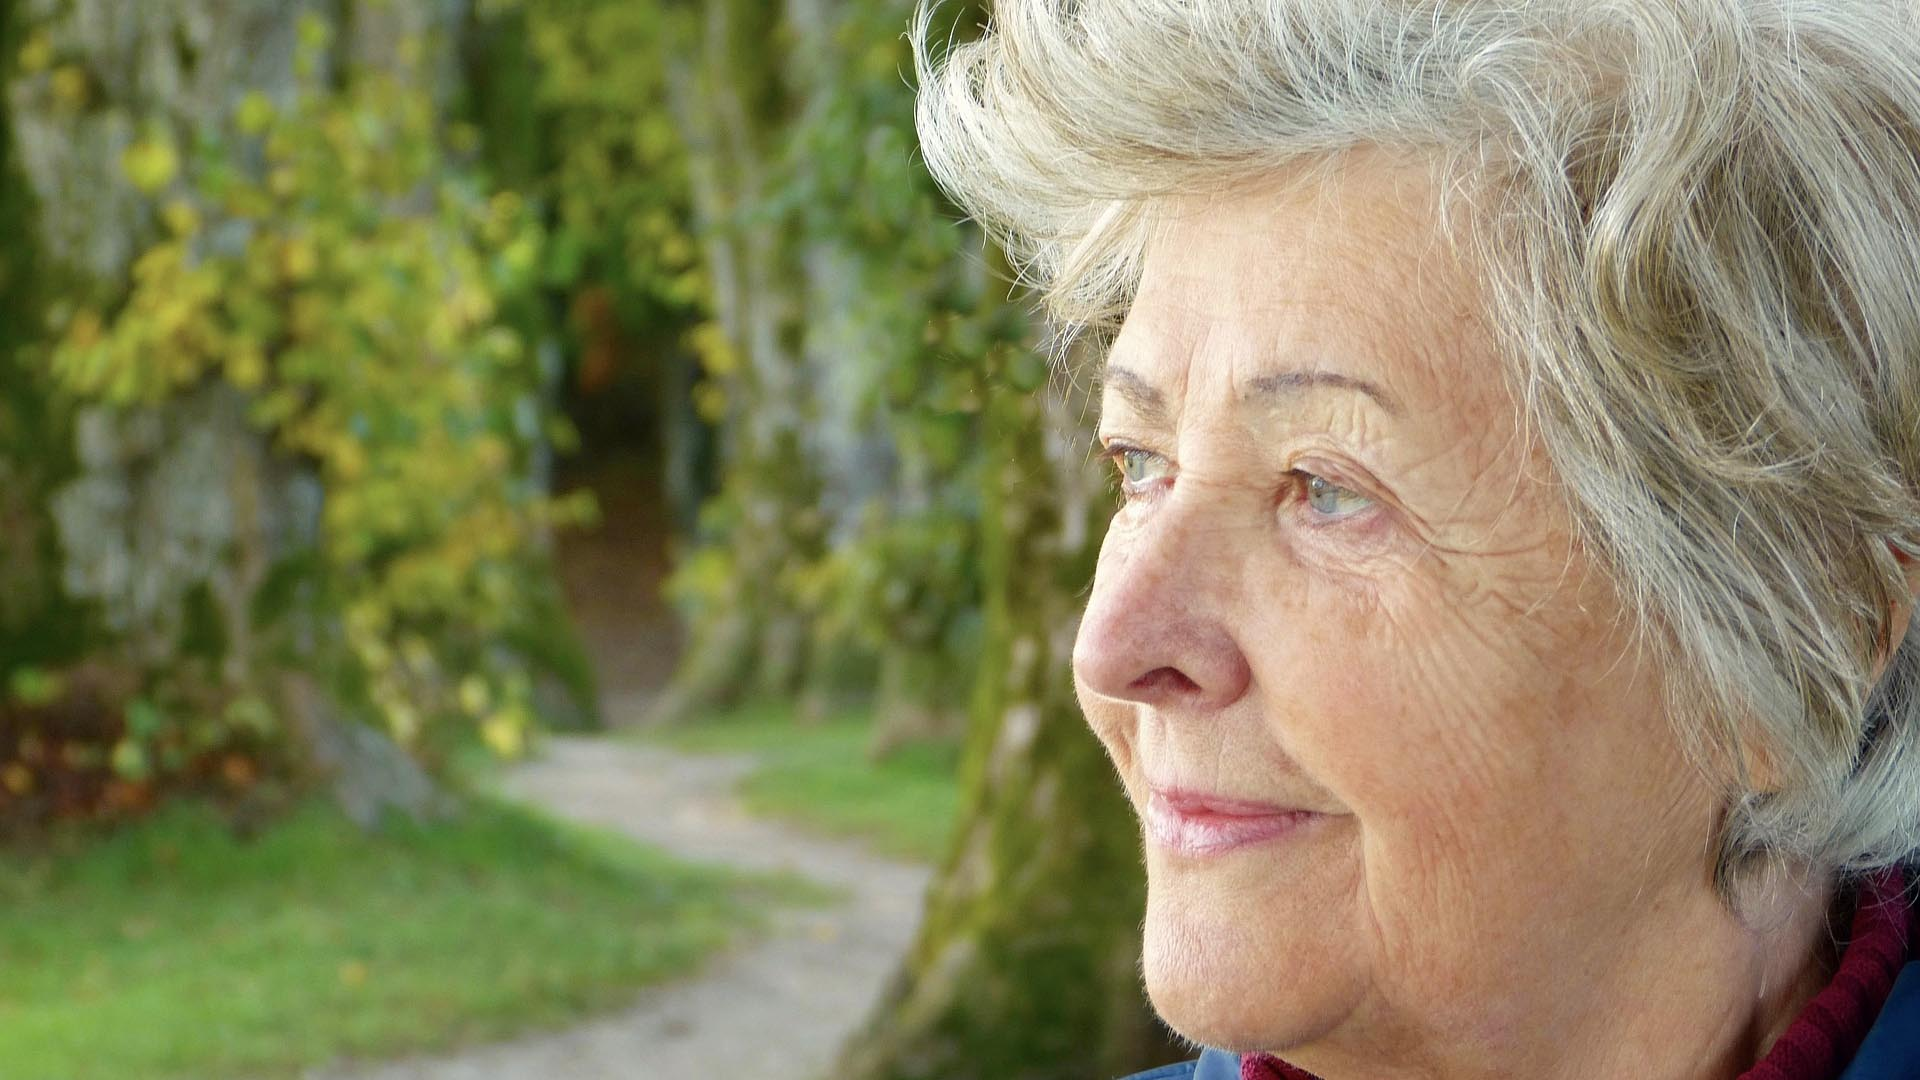 Image of an older adult looking out across a park.